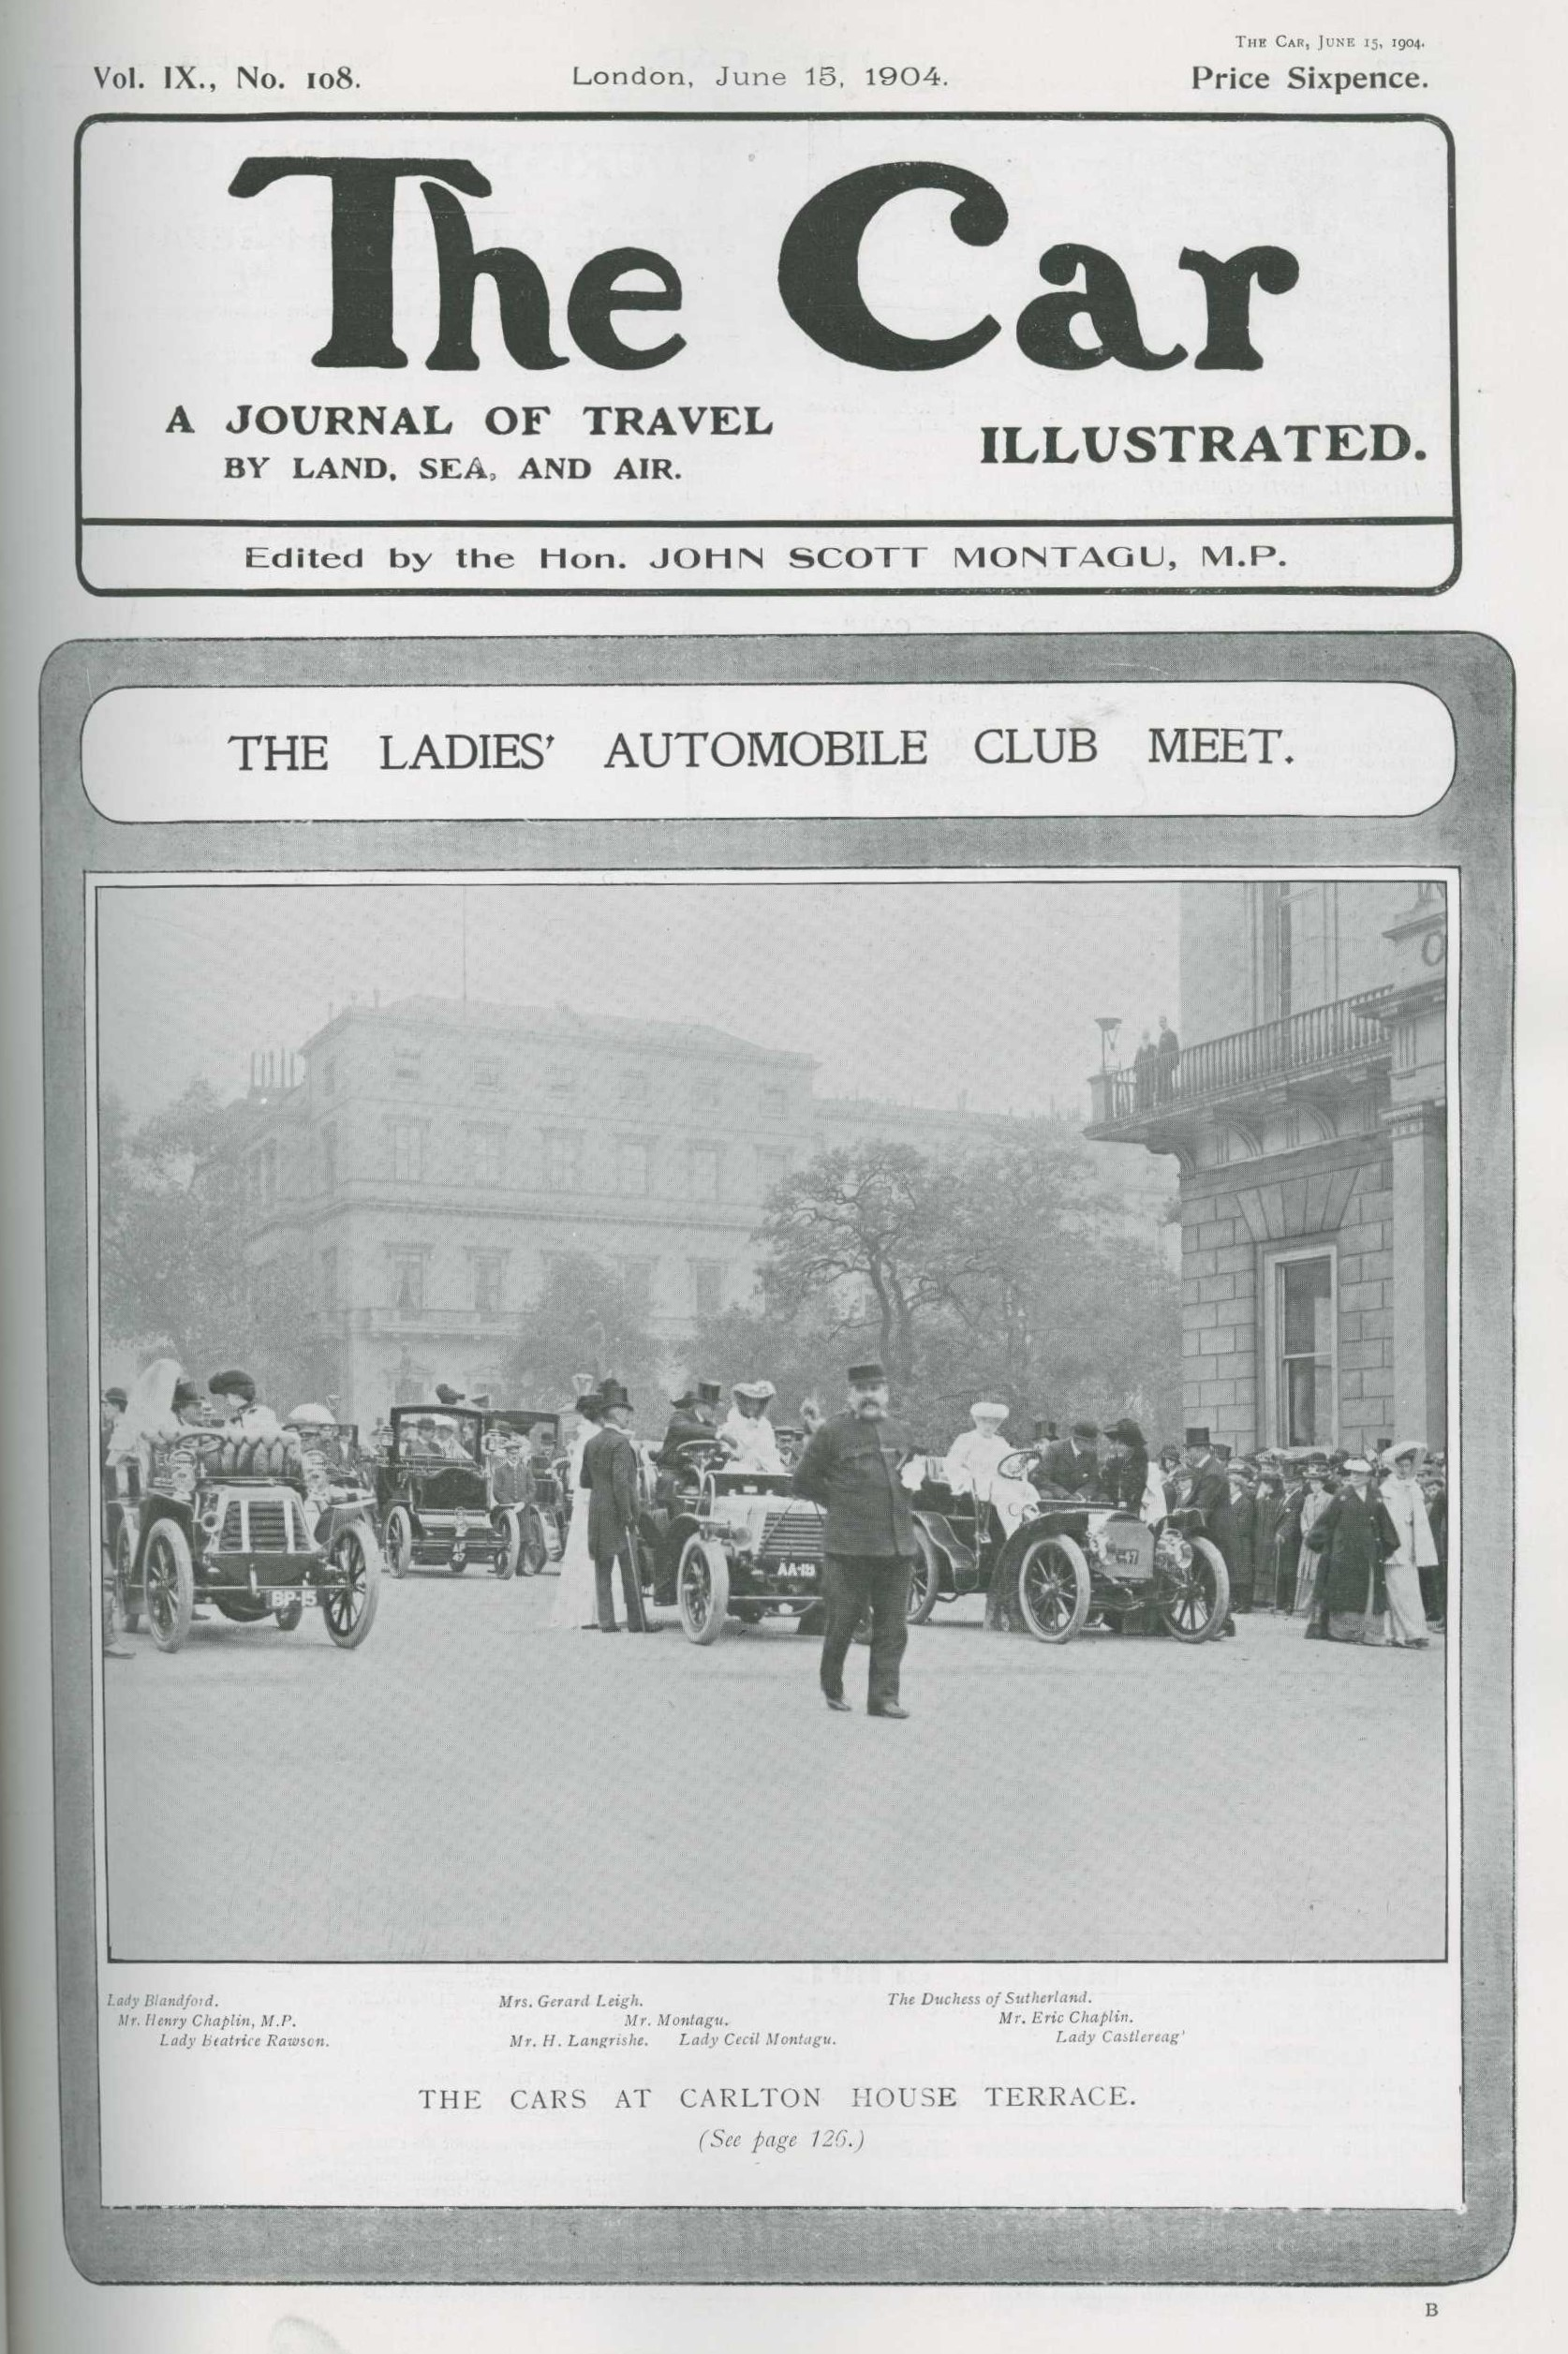 The Car Illustrated front cover